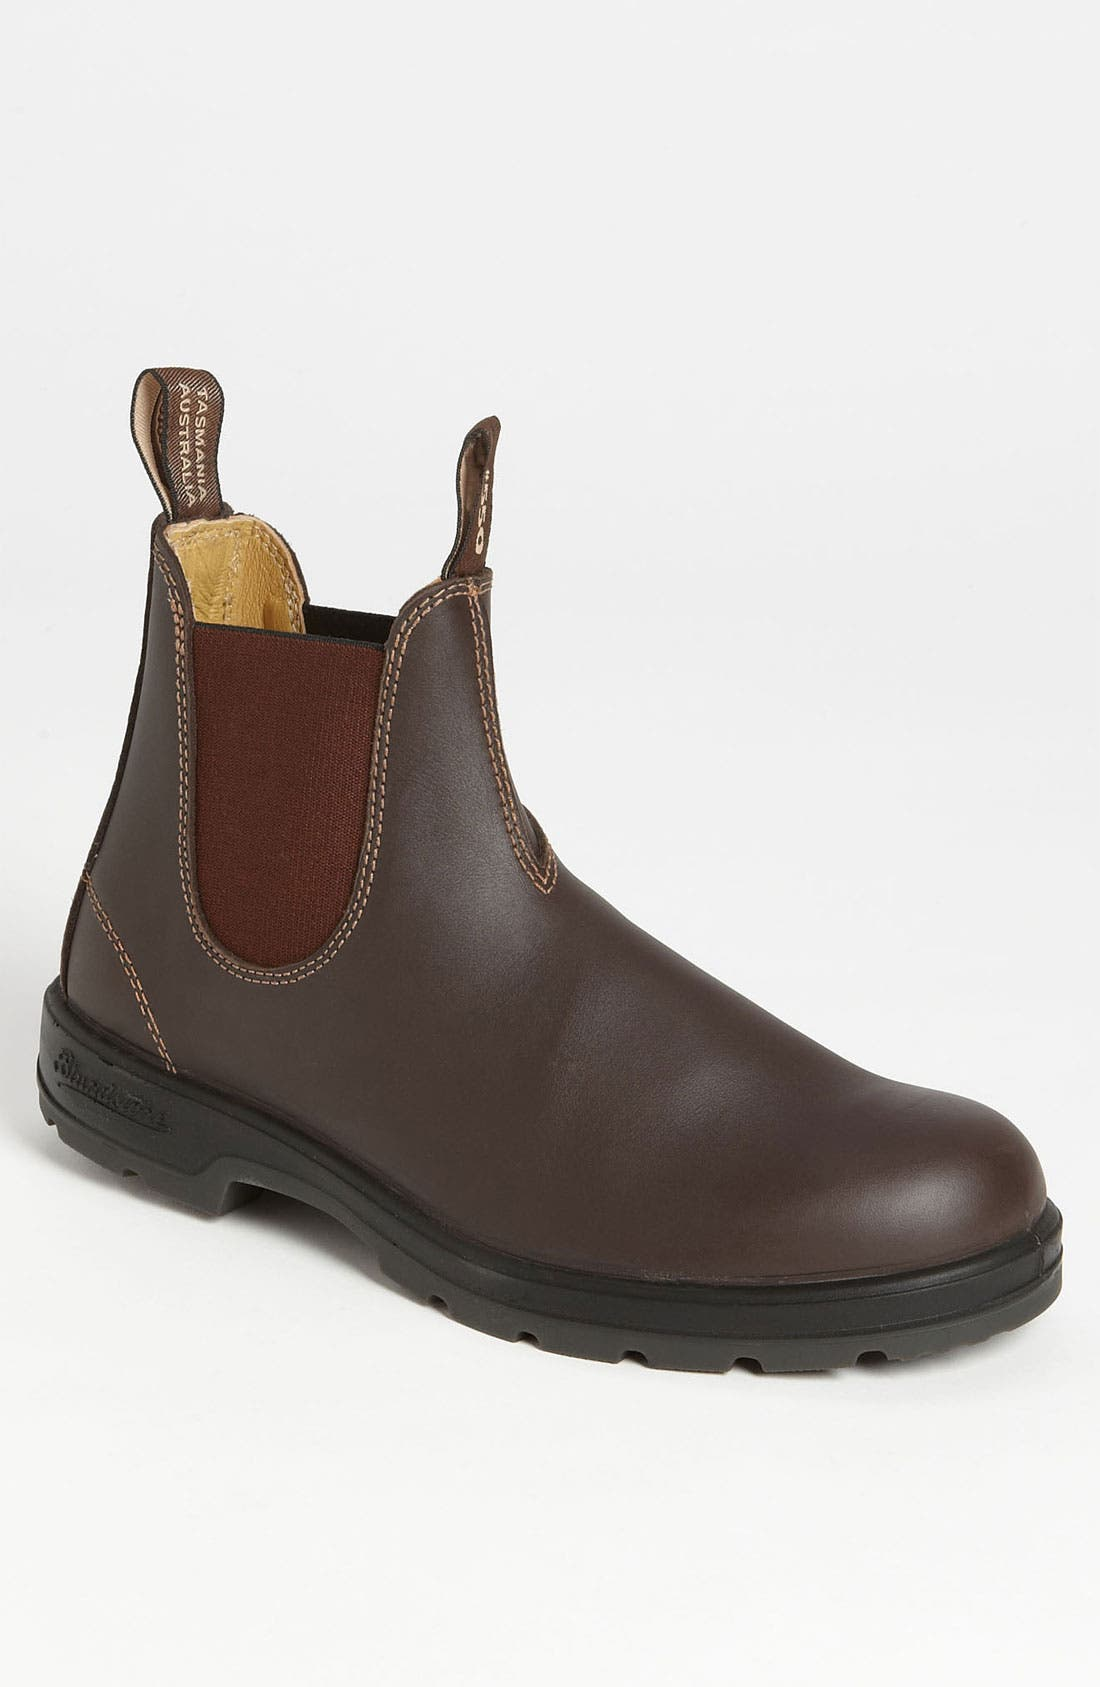 Alternate Image 1 Selected - Blundstone Footwear Chelsea Boot